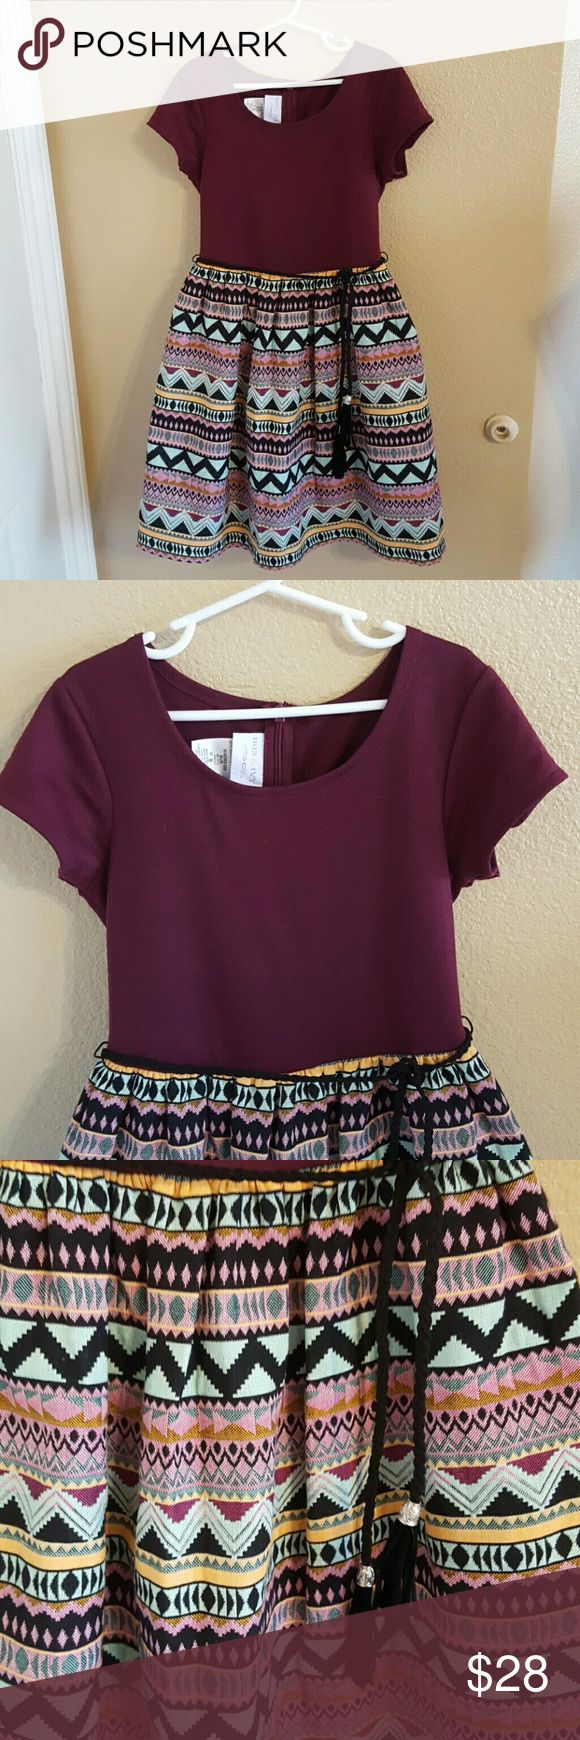 Nordstrom Girls Dress Size 8 NWOT NWOT Beautiful Nordstrom Girls Dress with Maroon Short Sleeve Top and Aztec Design bottom. Detachable Braided Belt adds the perfect accent. The Skirt does poof out as there is tulle layer and silk layer underneath for even more cuteness! Beautiful colors of Maroon, Black, Seafoam Green, Yellow, and Pinks Hidden zipper in back. Tried on never worn. Perfect condition iris & ivy Dresses Formal